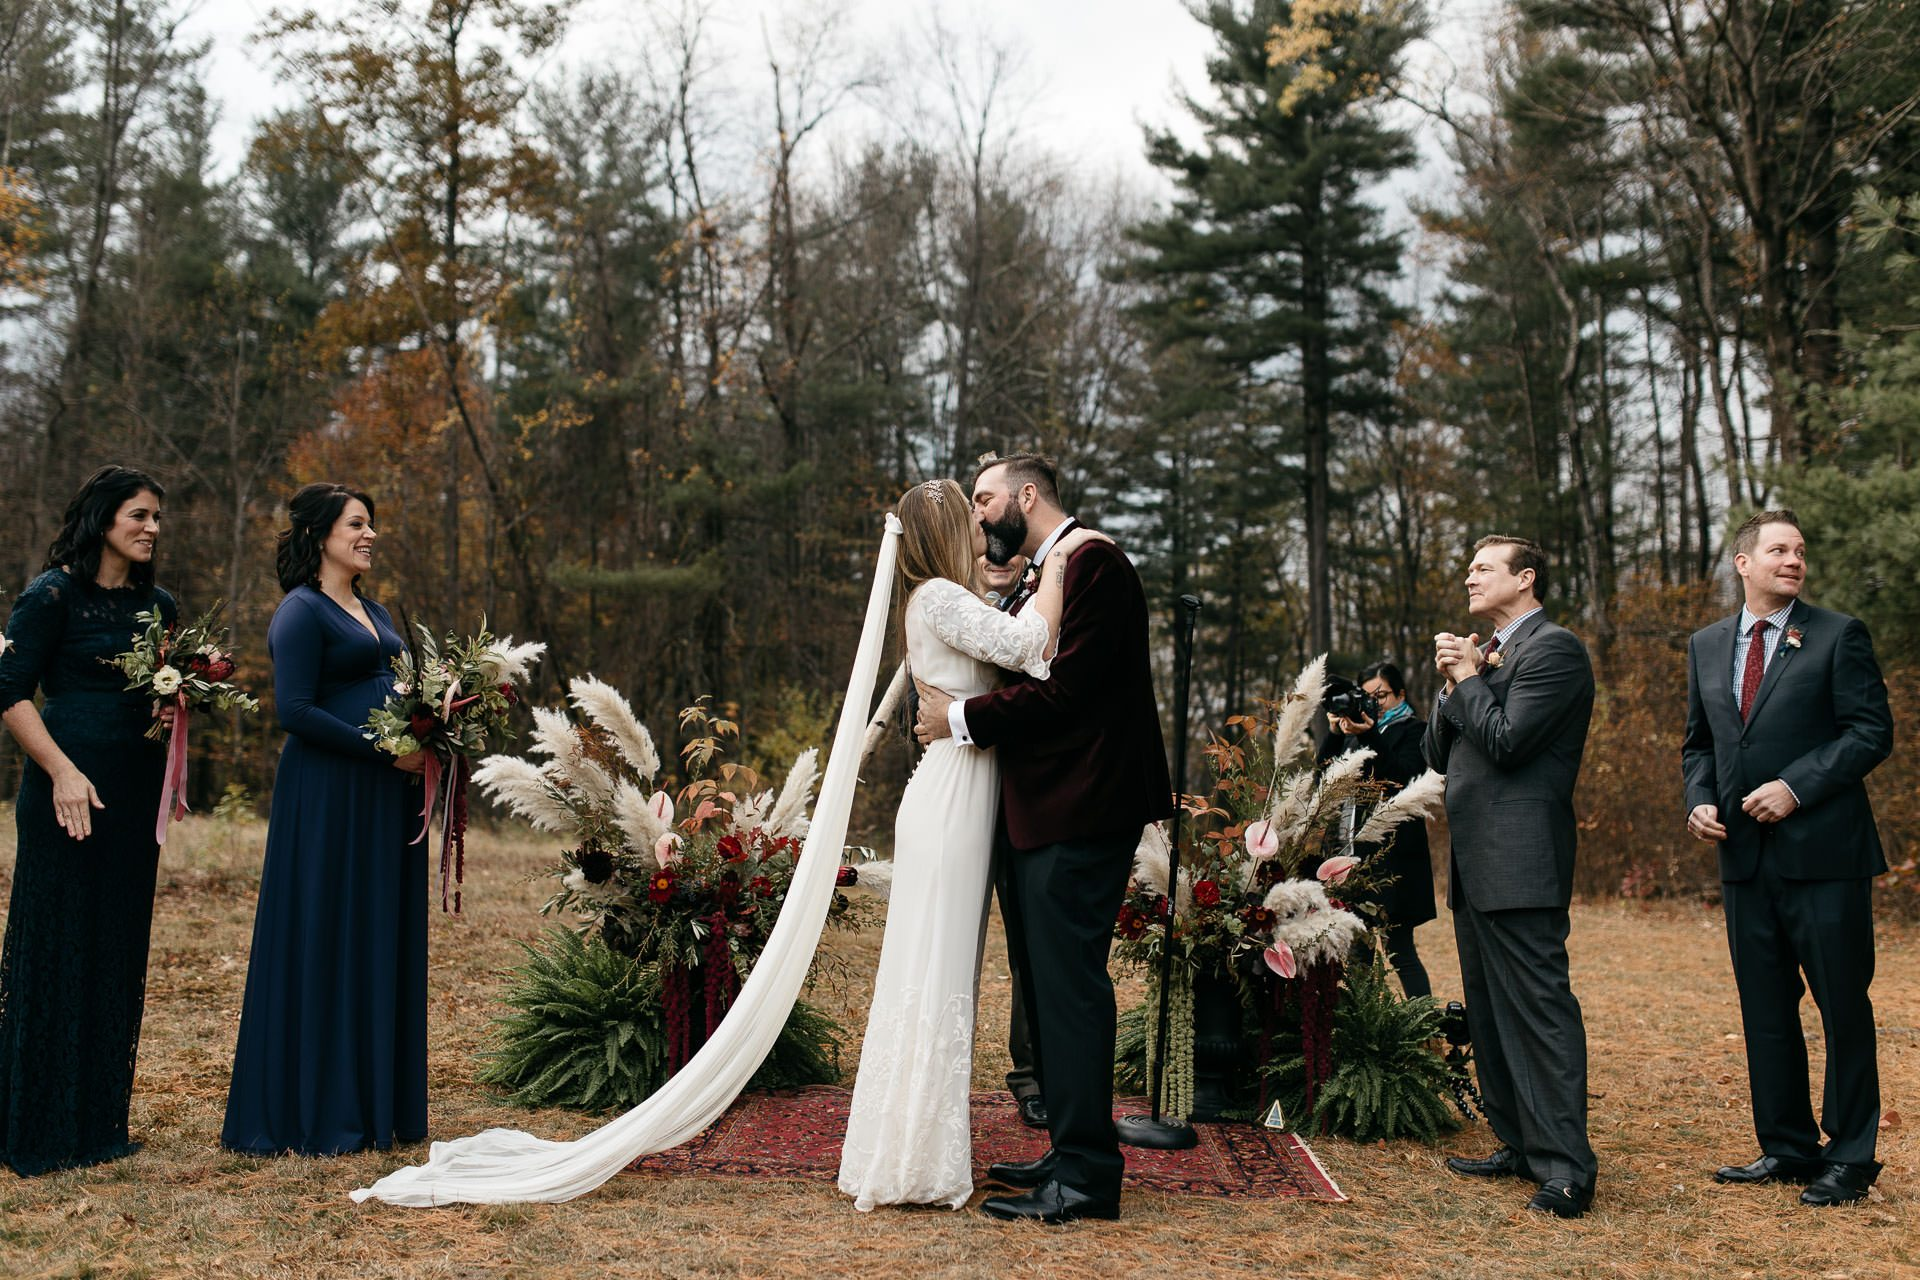 Robyn & Slim's Fall wedding at Foxfire Mountain House . Mount Tremper - Catskills, NY